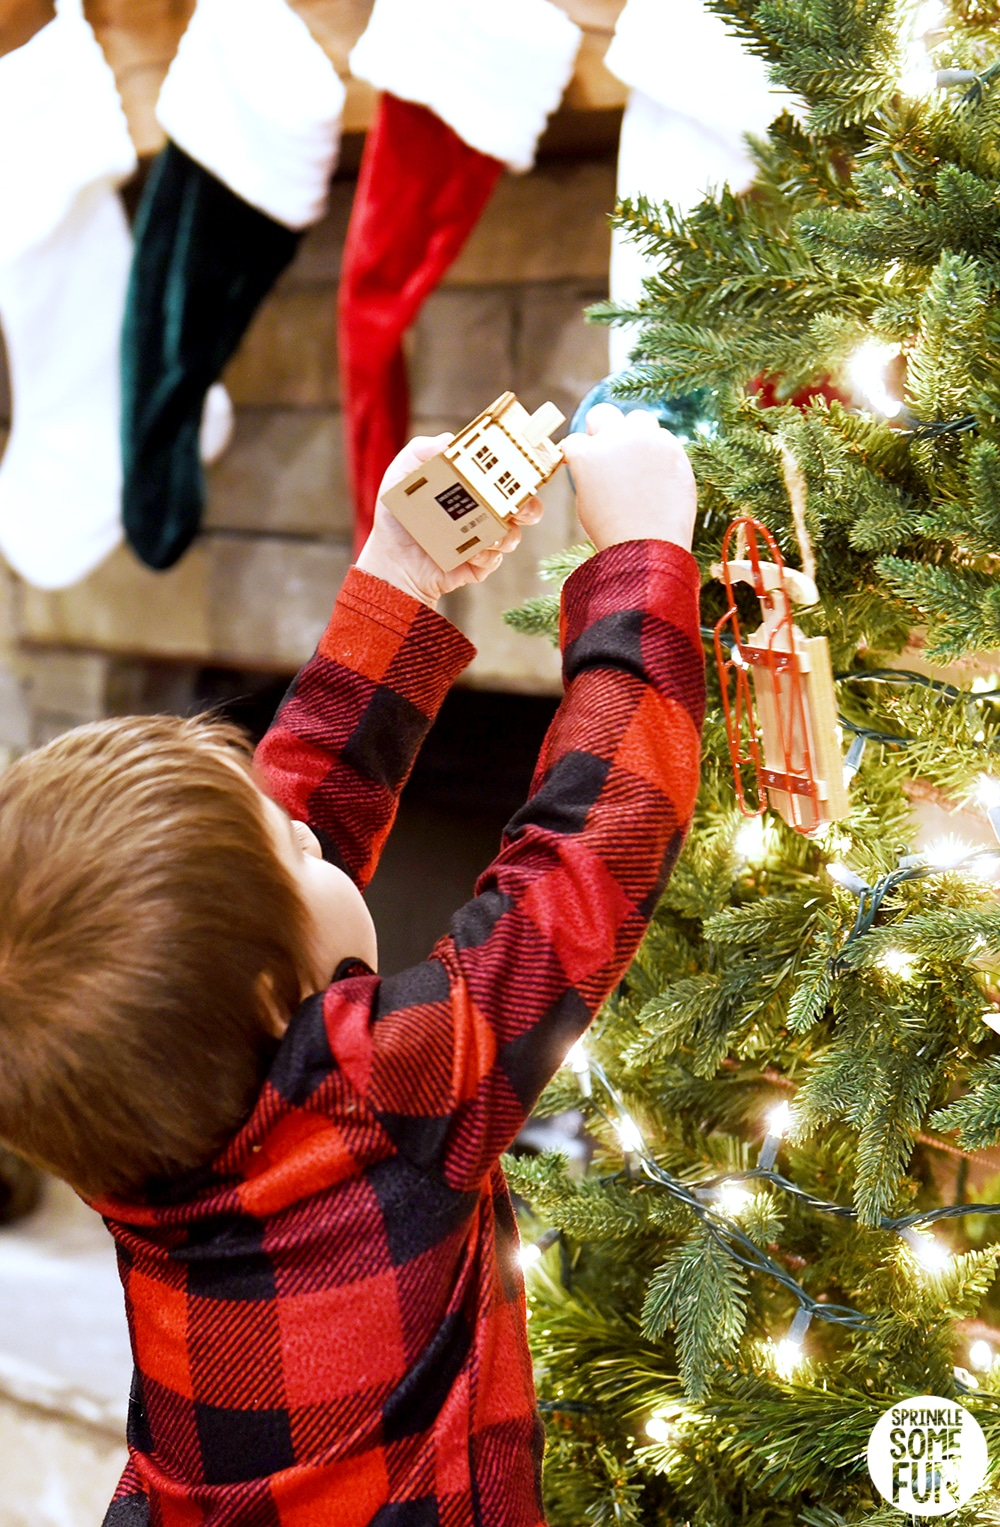 Hanging Ornaments on tree stress free holidays